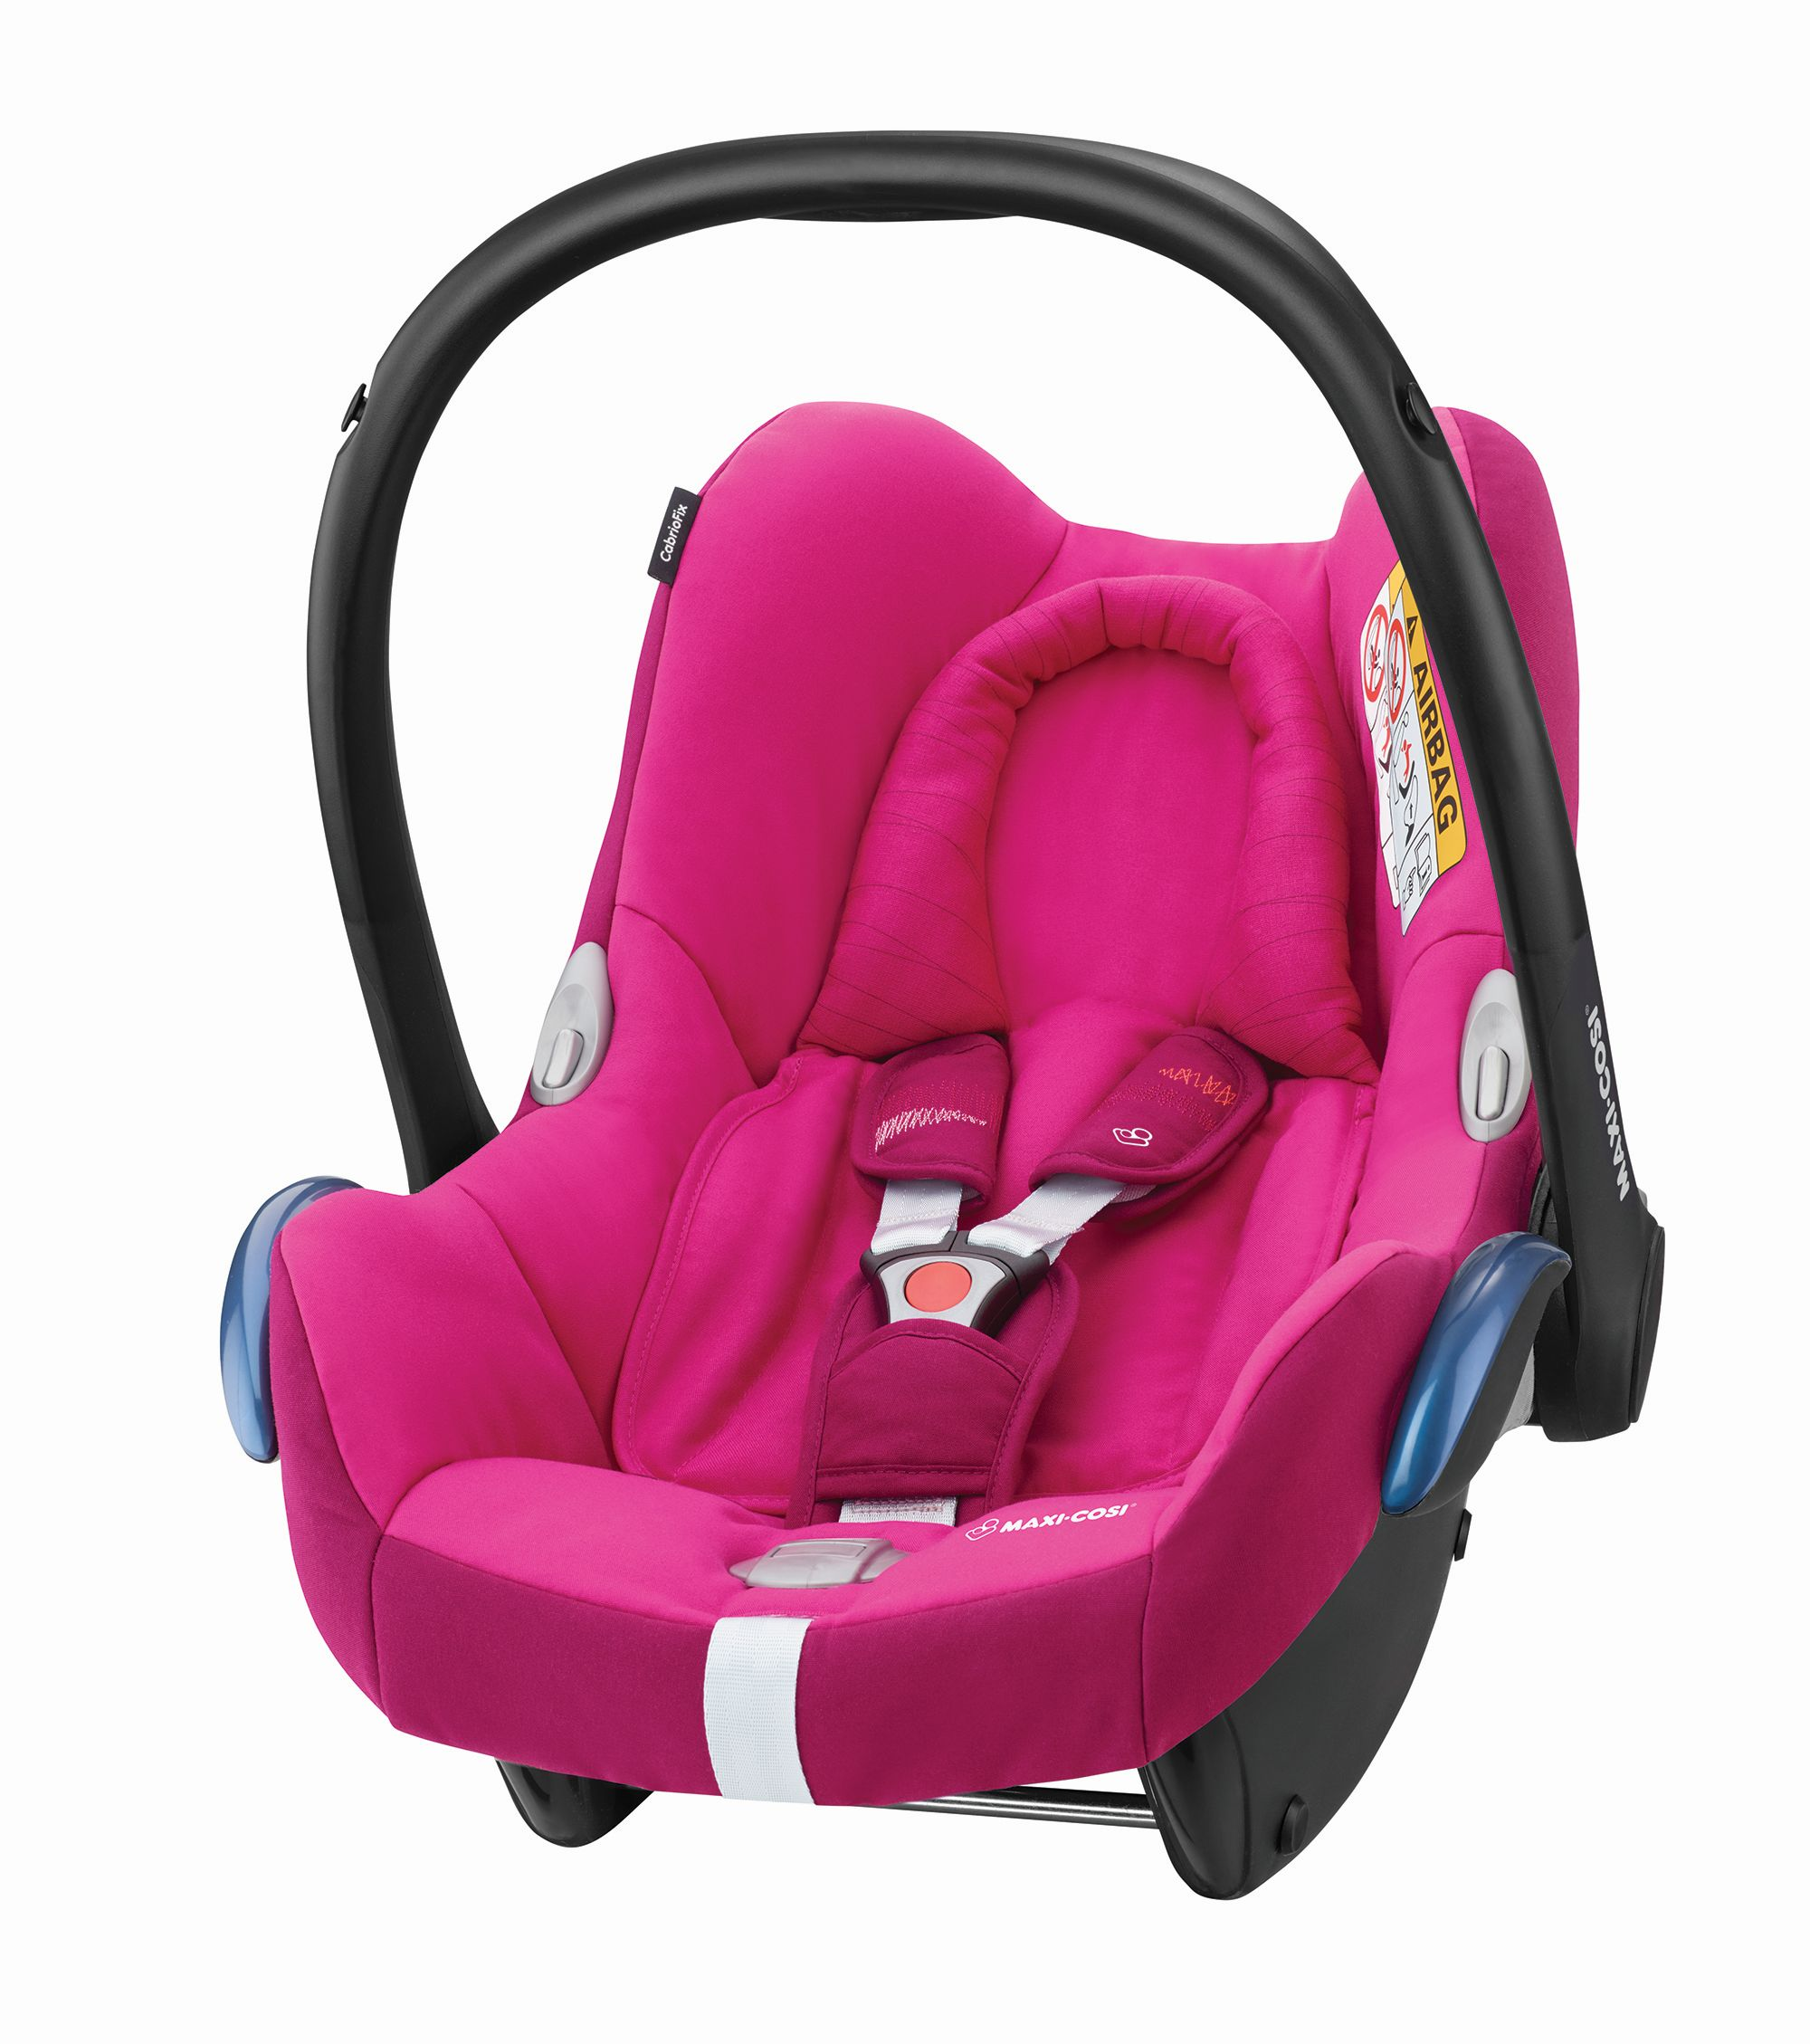 maxi cosi infant car seat cabriofix 2018 frequency pink. Black Bedroom Furniture Sets. Home Design Ideas